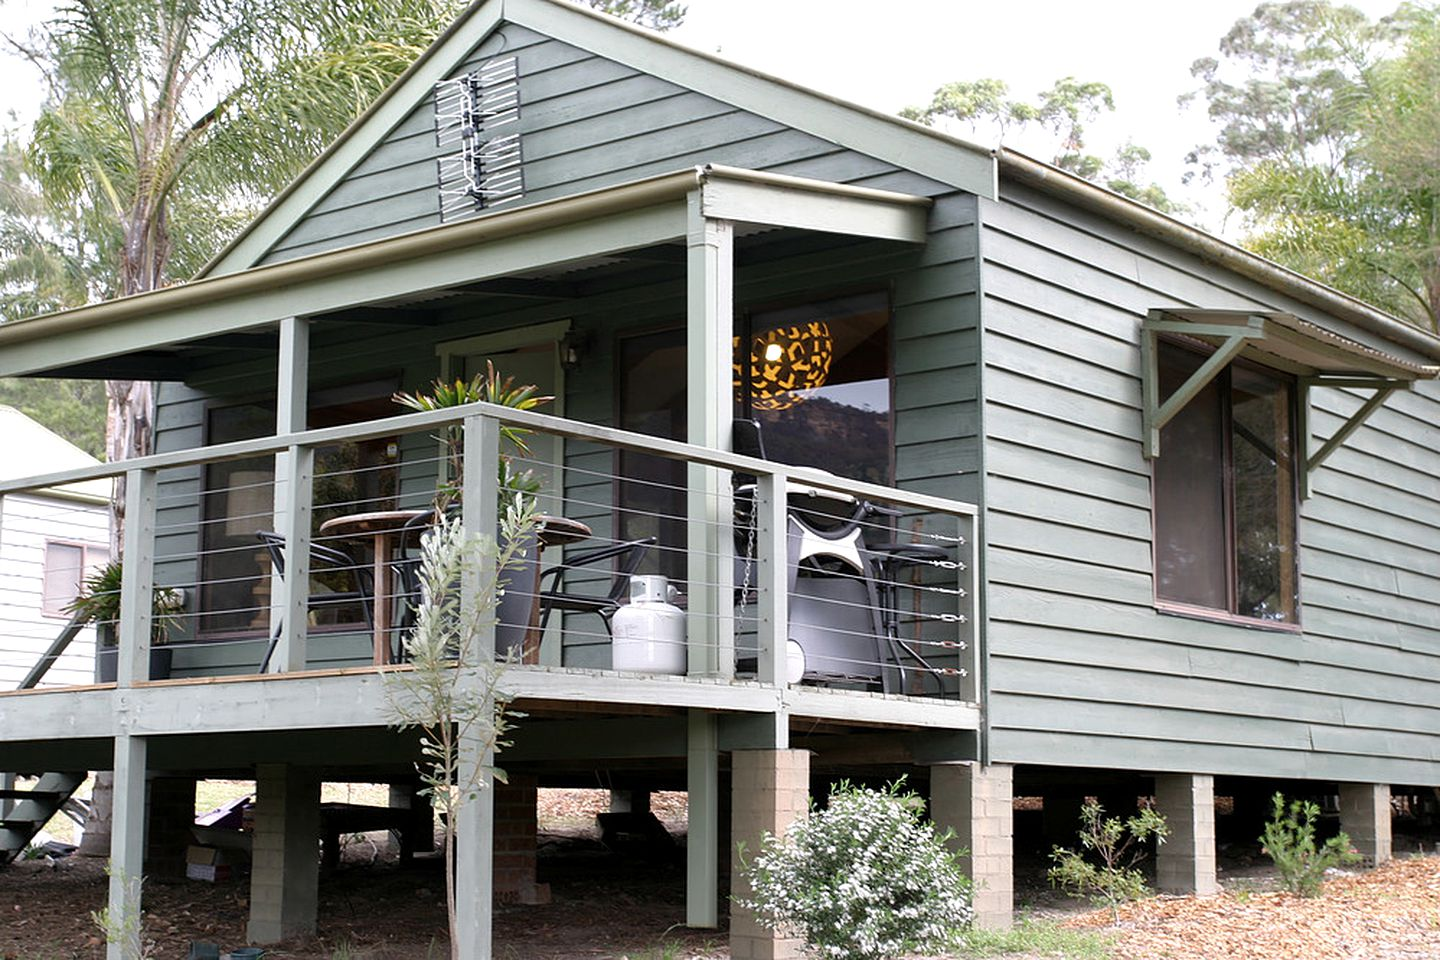 Cabins (Kangaroo Valley, New South Wales, Australia)